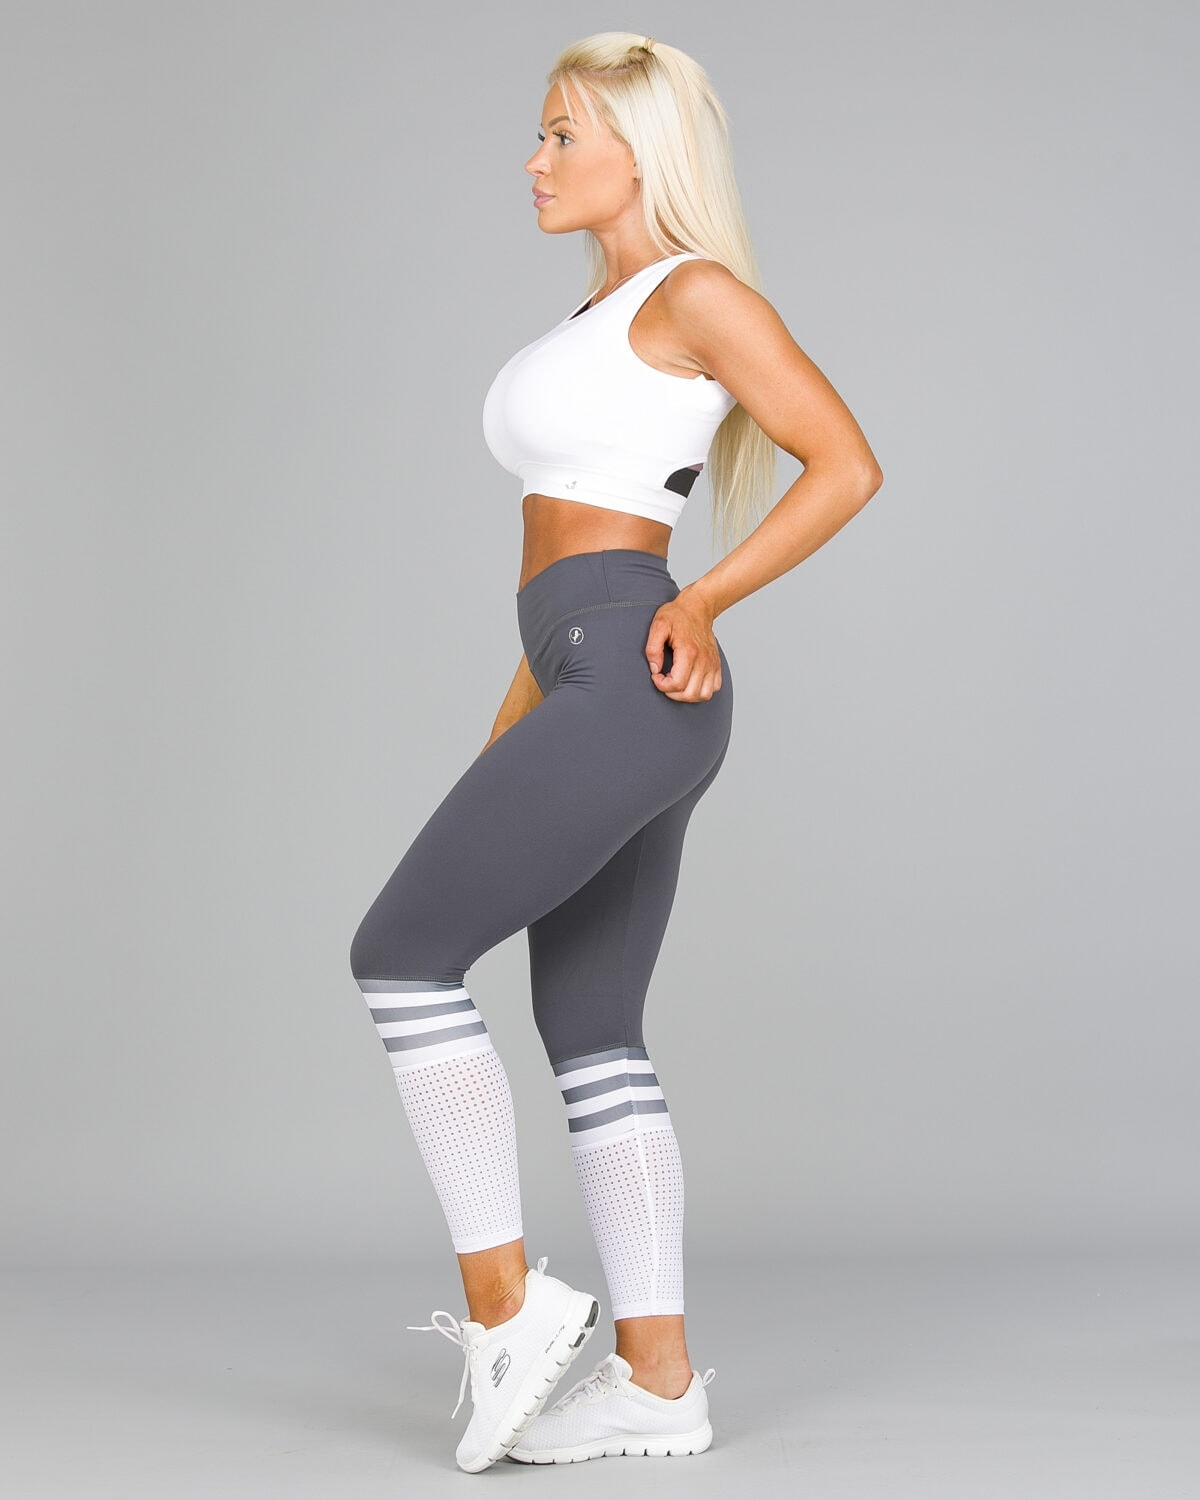 ABS2B-Fitness-Regular-Rise-Mom-Soccer-Mesh-Leggings-Grey2-1200×1500